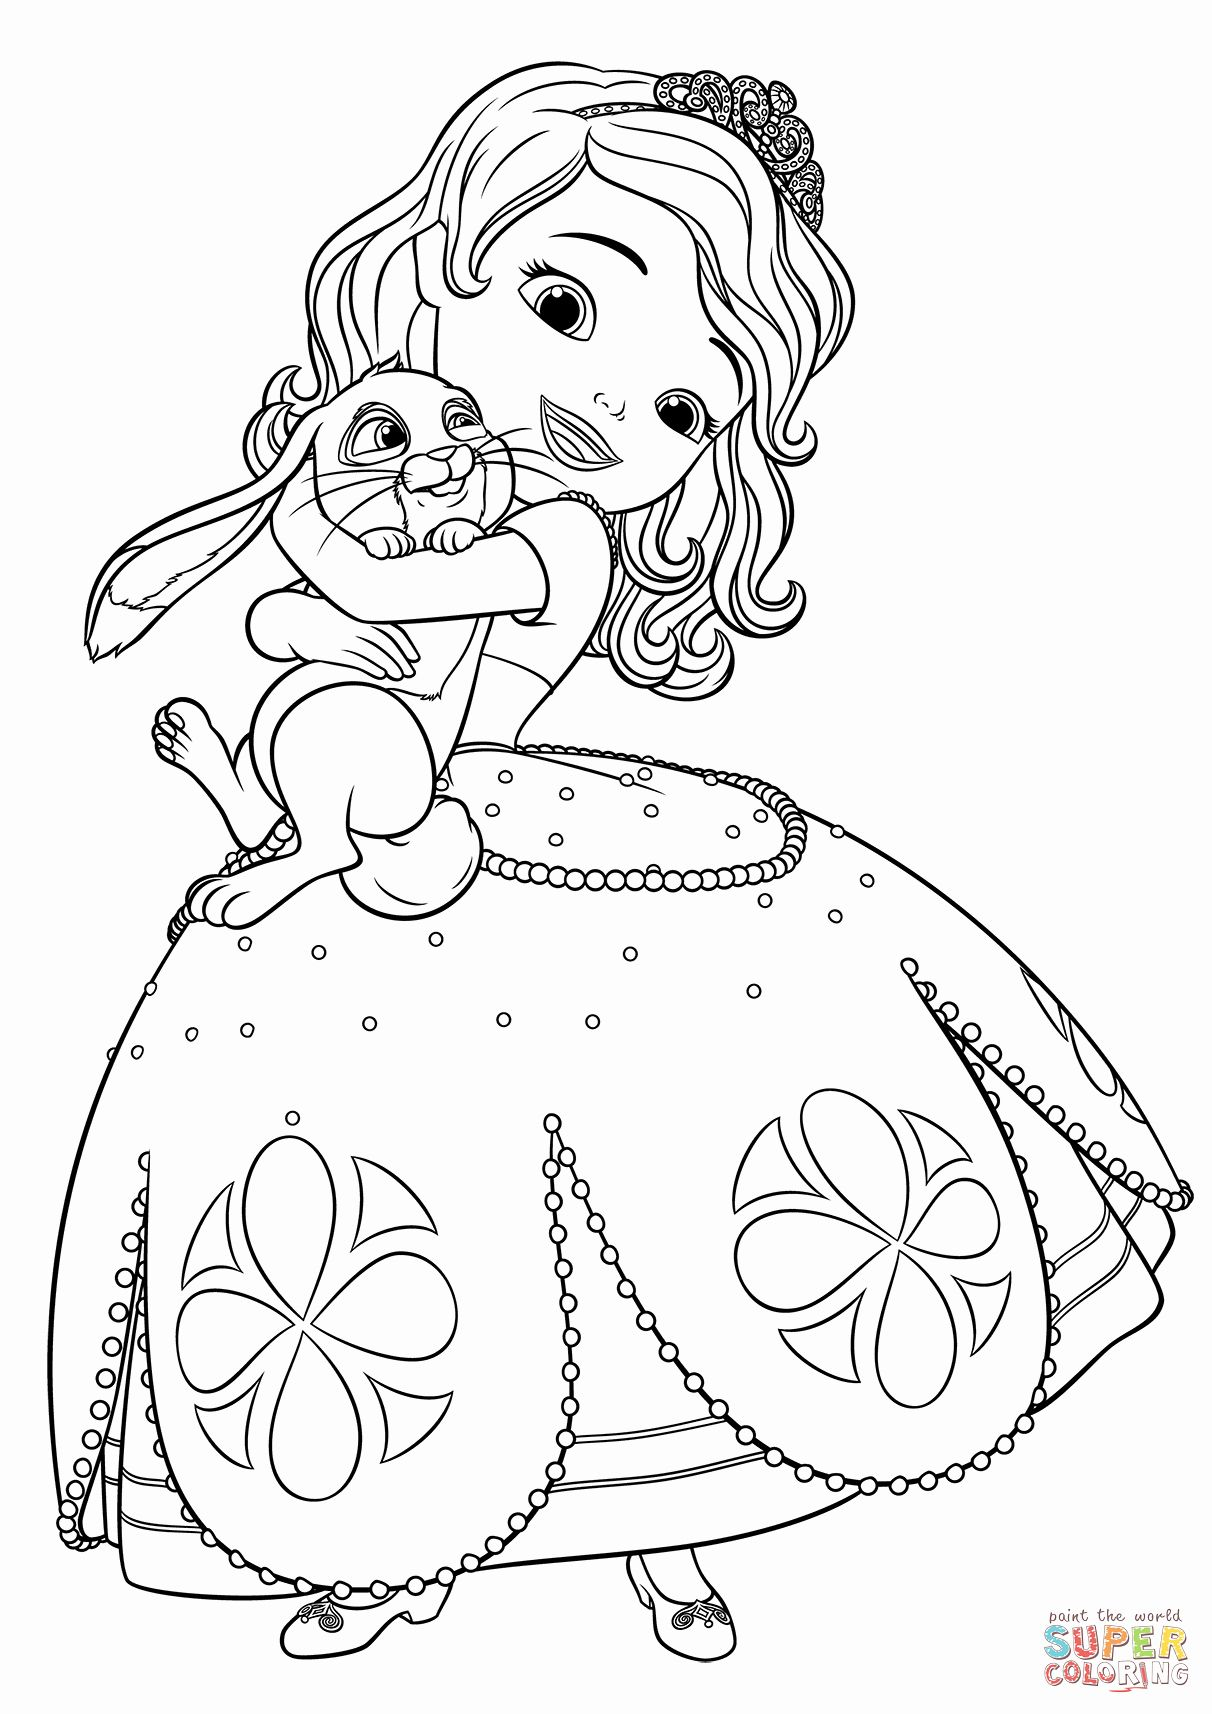 sofia the first coloring pages free sofia the first coloring pages free printable sofia the first the pages sofia coloring free